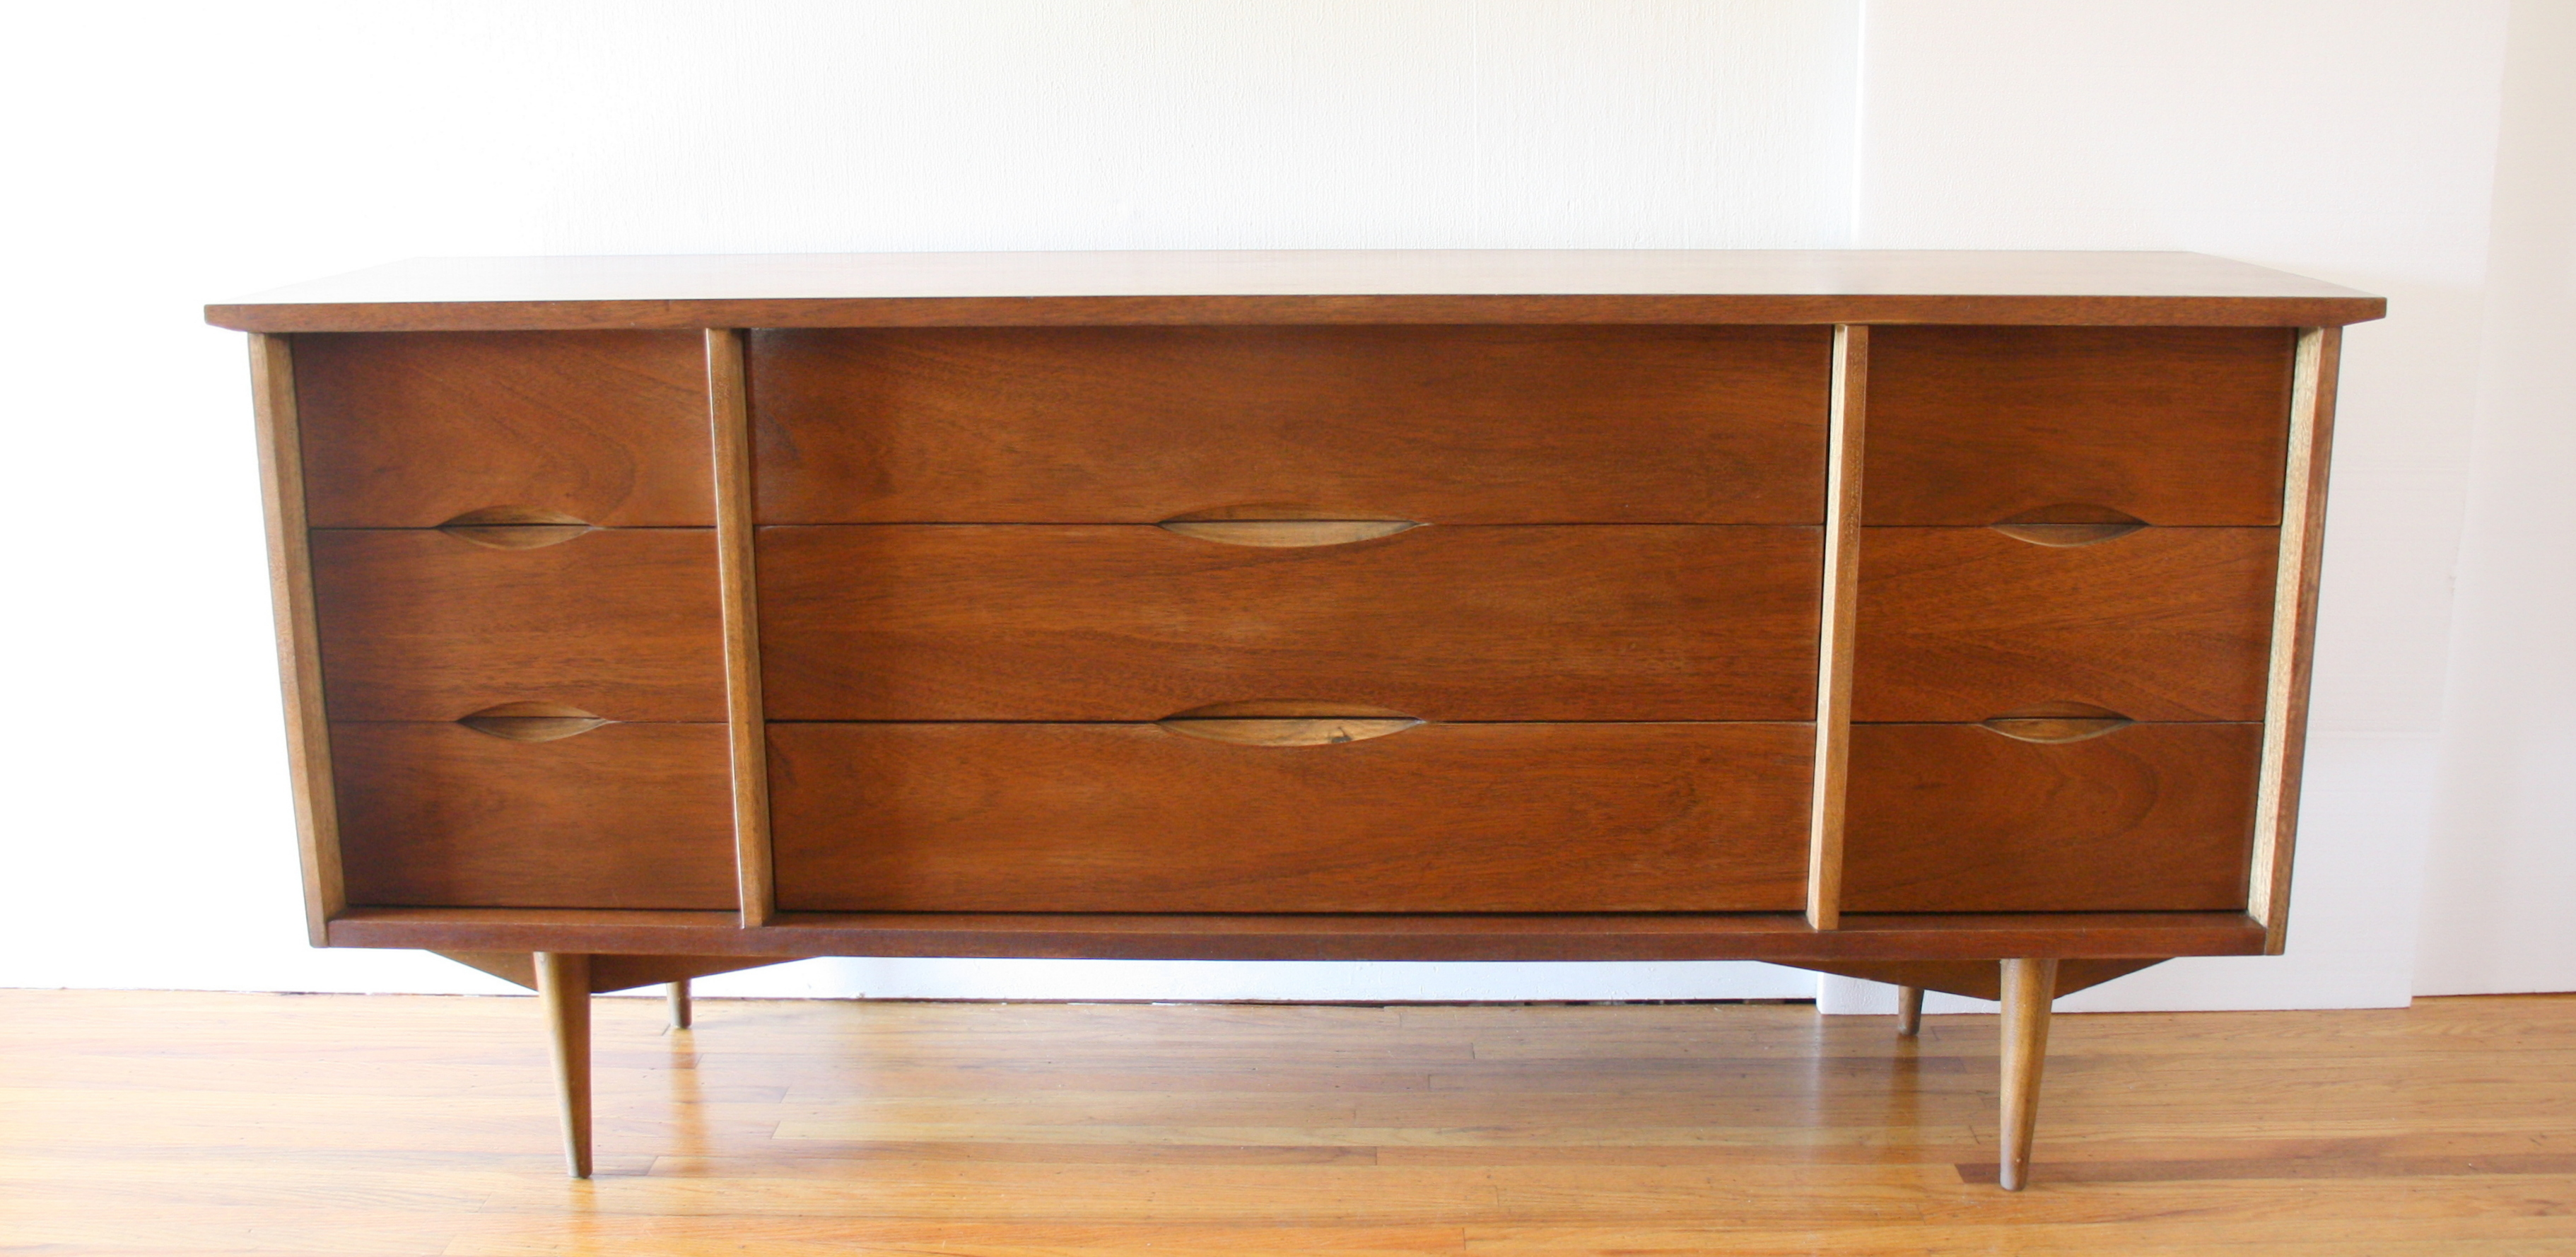 Bassett low dresser credenza carved handle 1.JPG